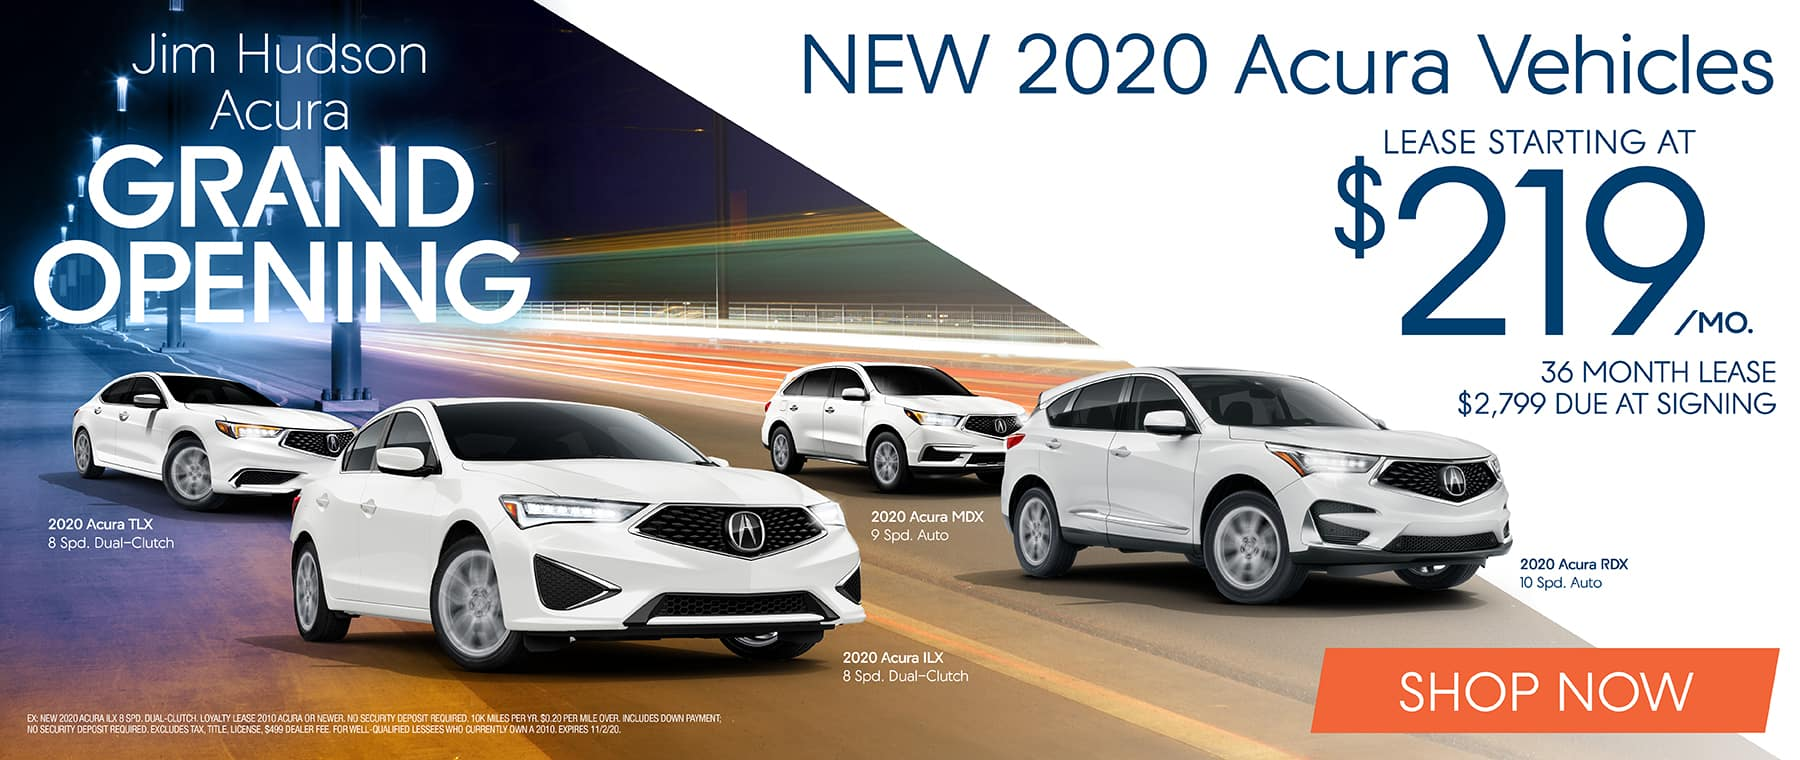 New 2020 Acura Vehicles